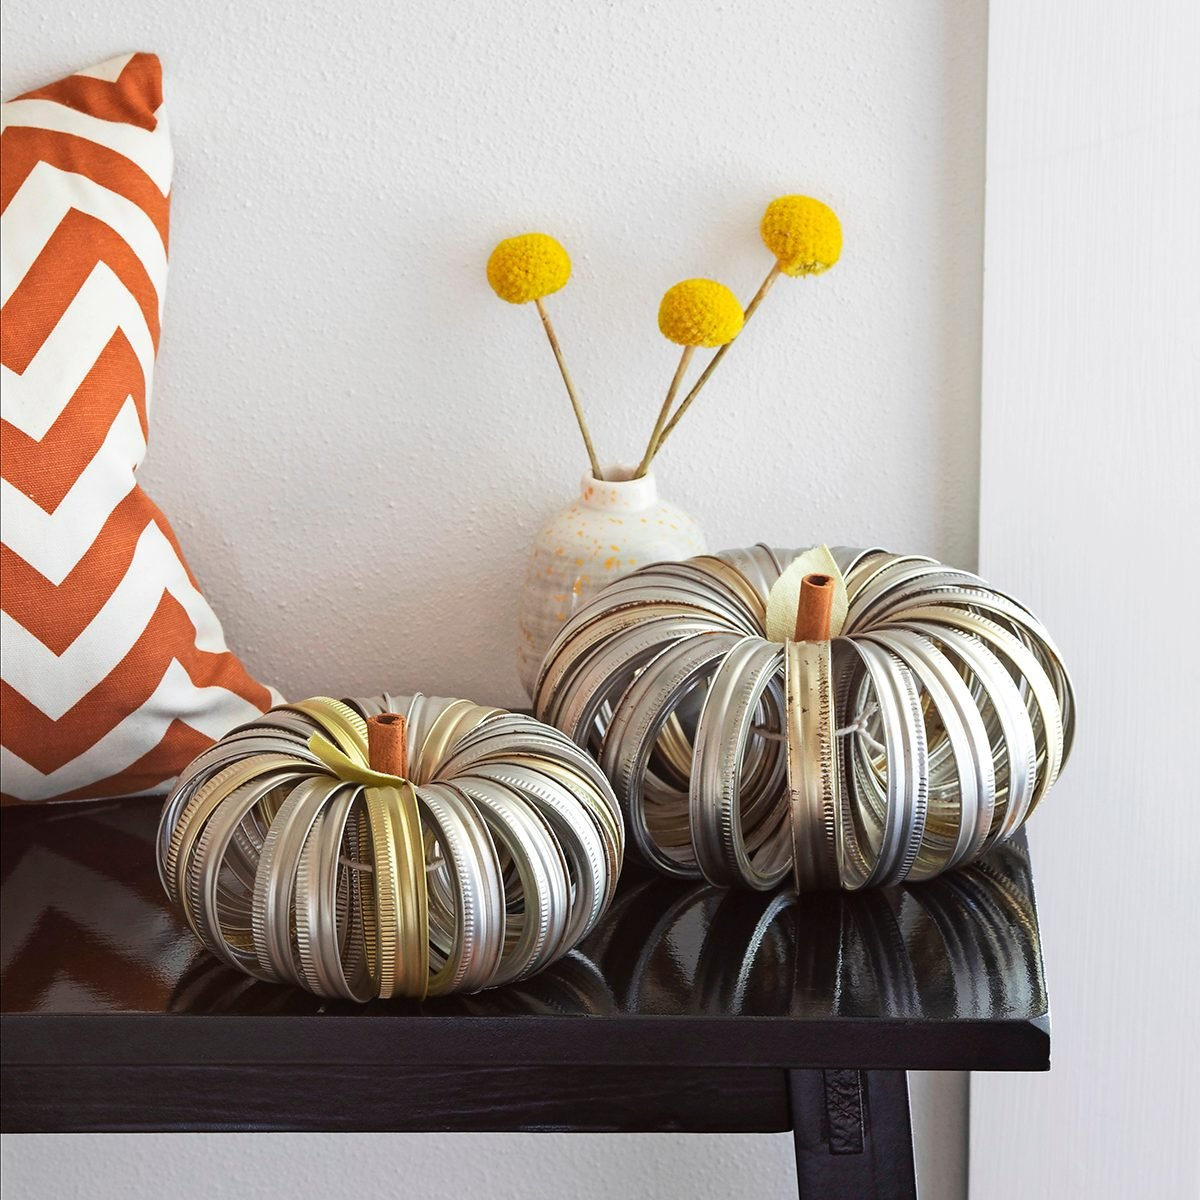 25 Easy Fall Decor Ideas To Make Your Home Cozy Taste Of Home